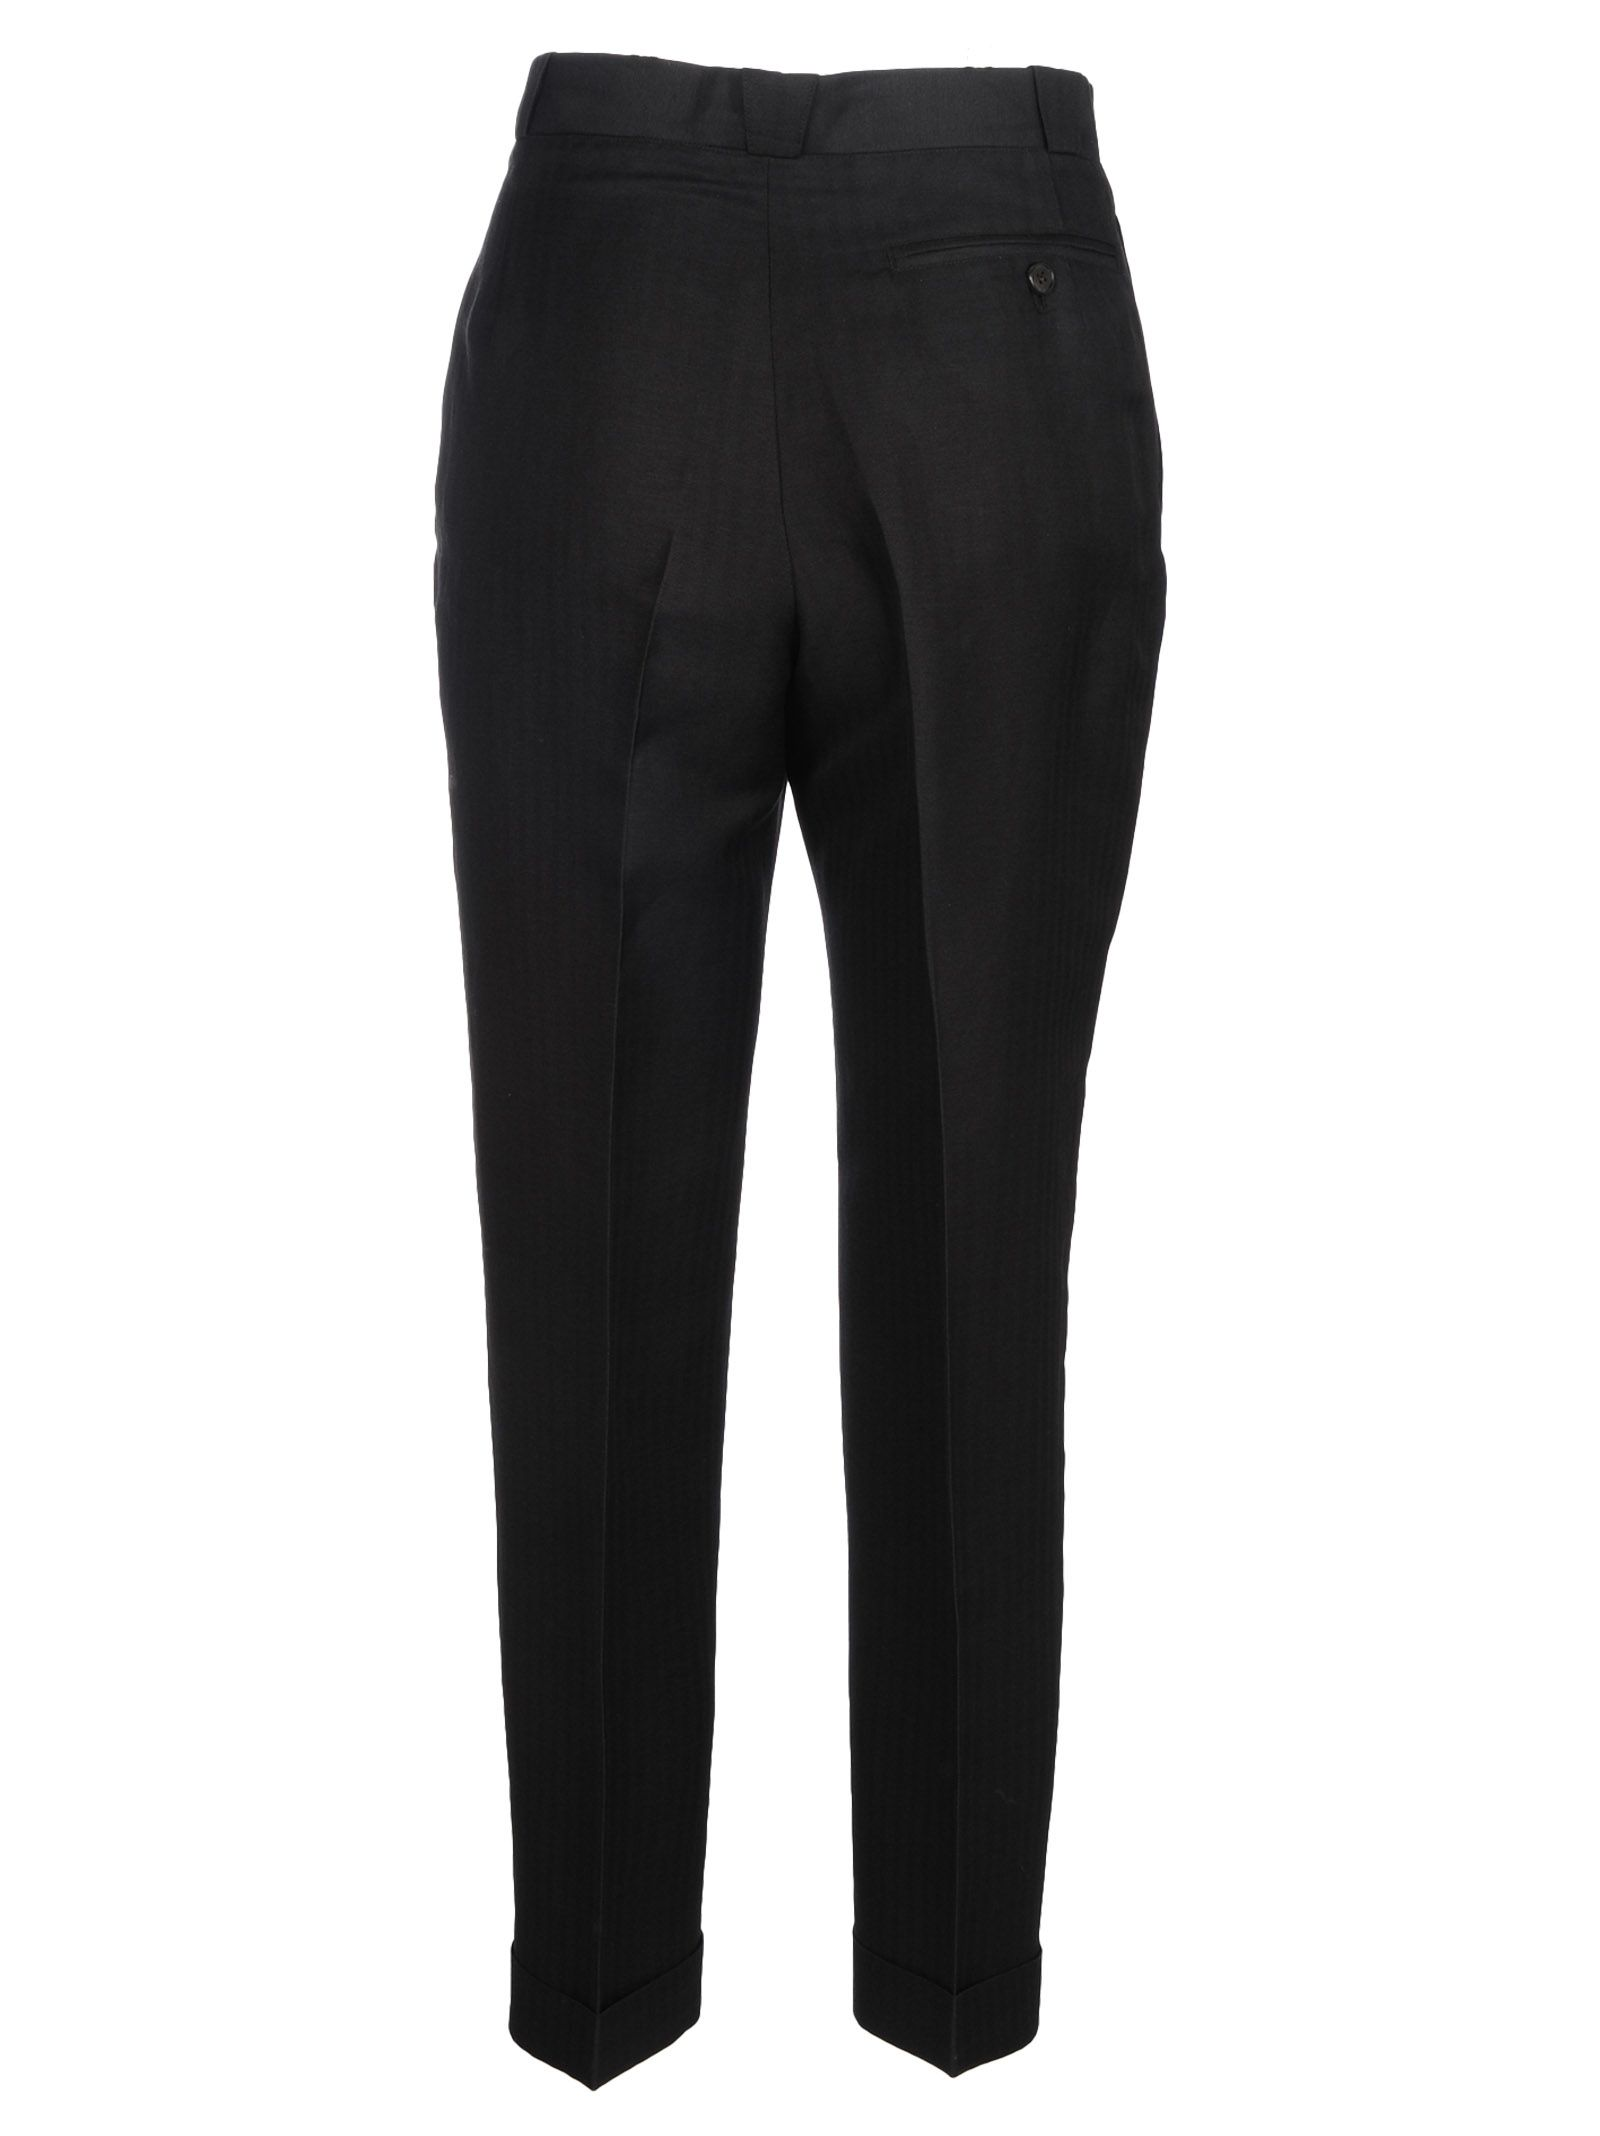 Store Cheap Price Discount Manchester Great Sale high waisted trousers - White Maison Martin Margiela For Nice For Sale mpBpSusD